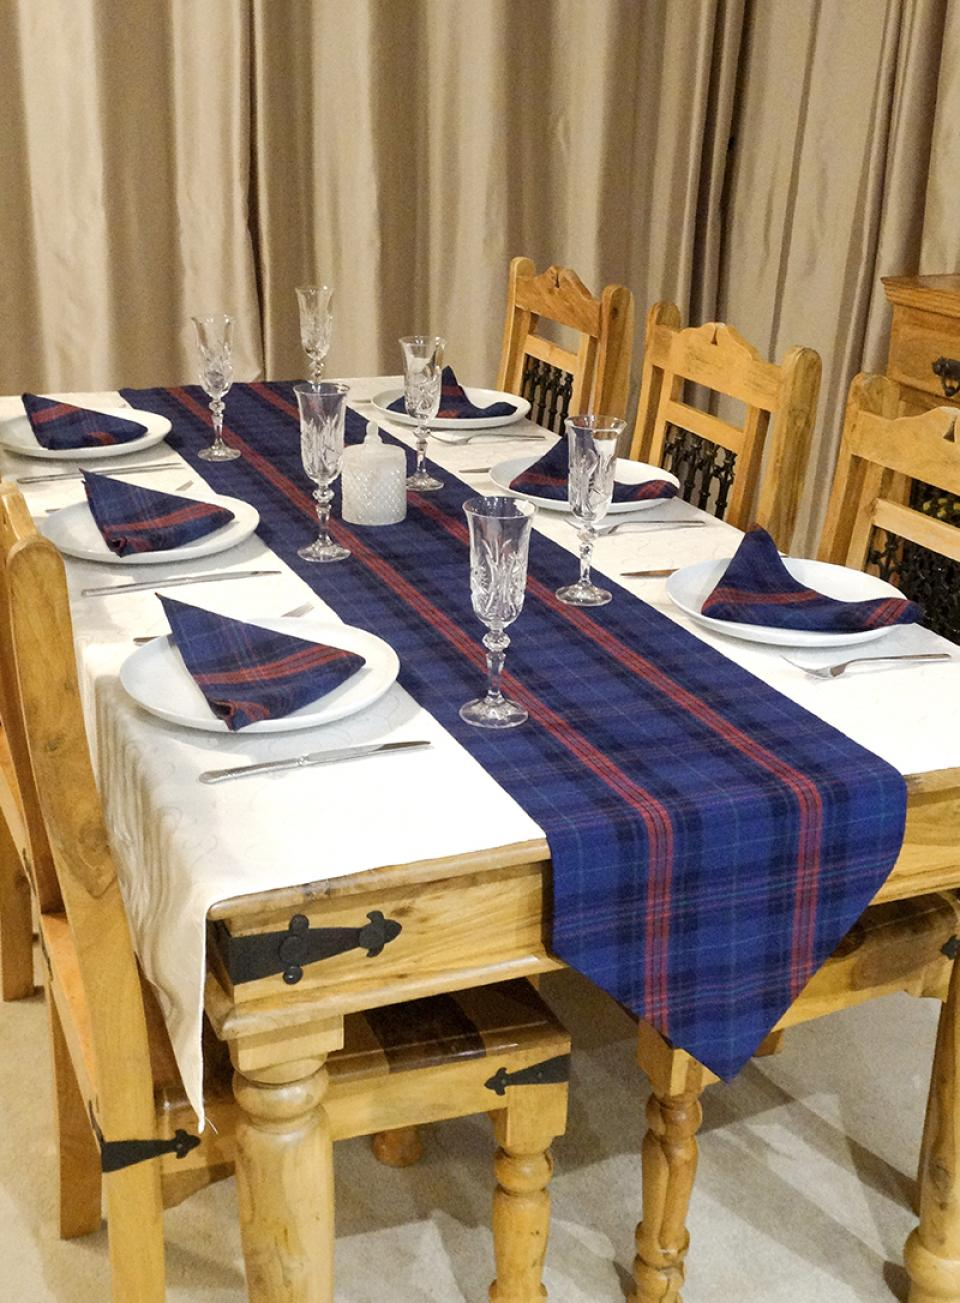 Tartan Table Runner & Napkins Set